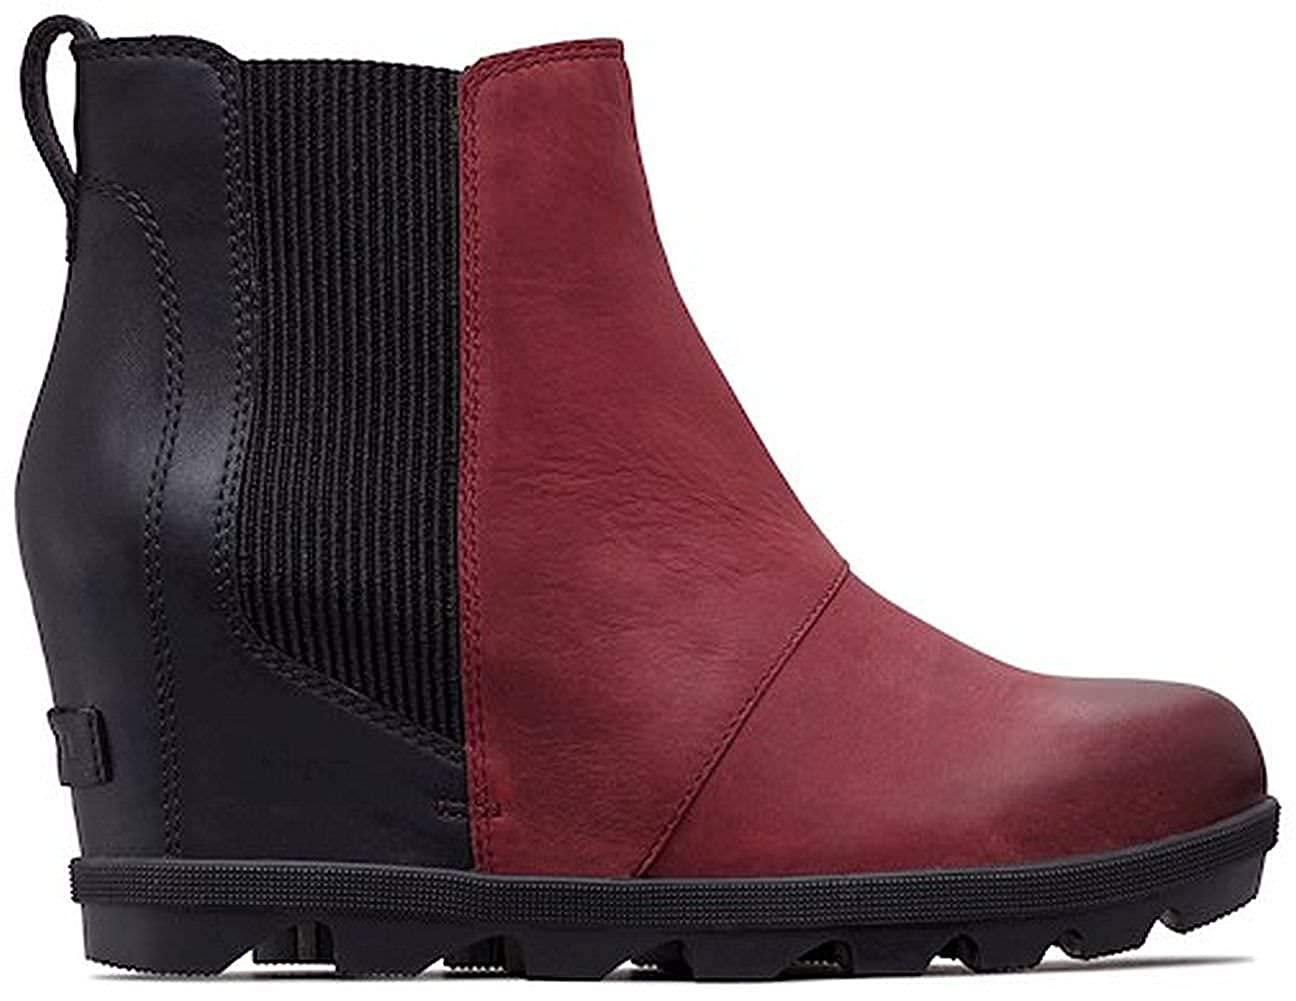 73552c8f14b3 SOREL Women s Joan of Arctic Wedge II Chelsea Boots 1808551 ...